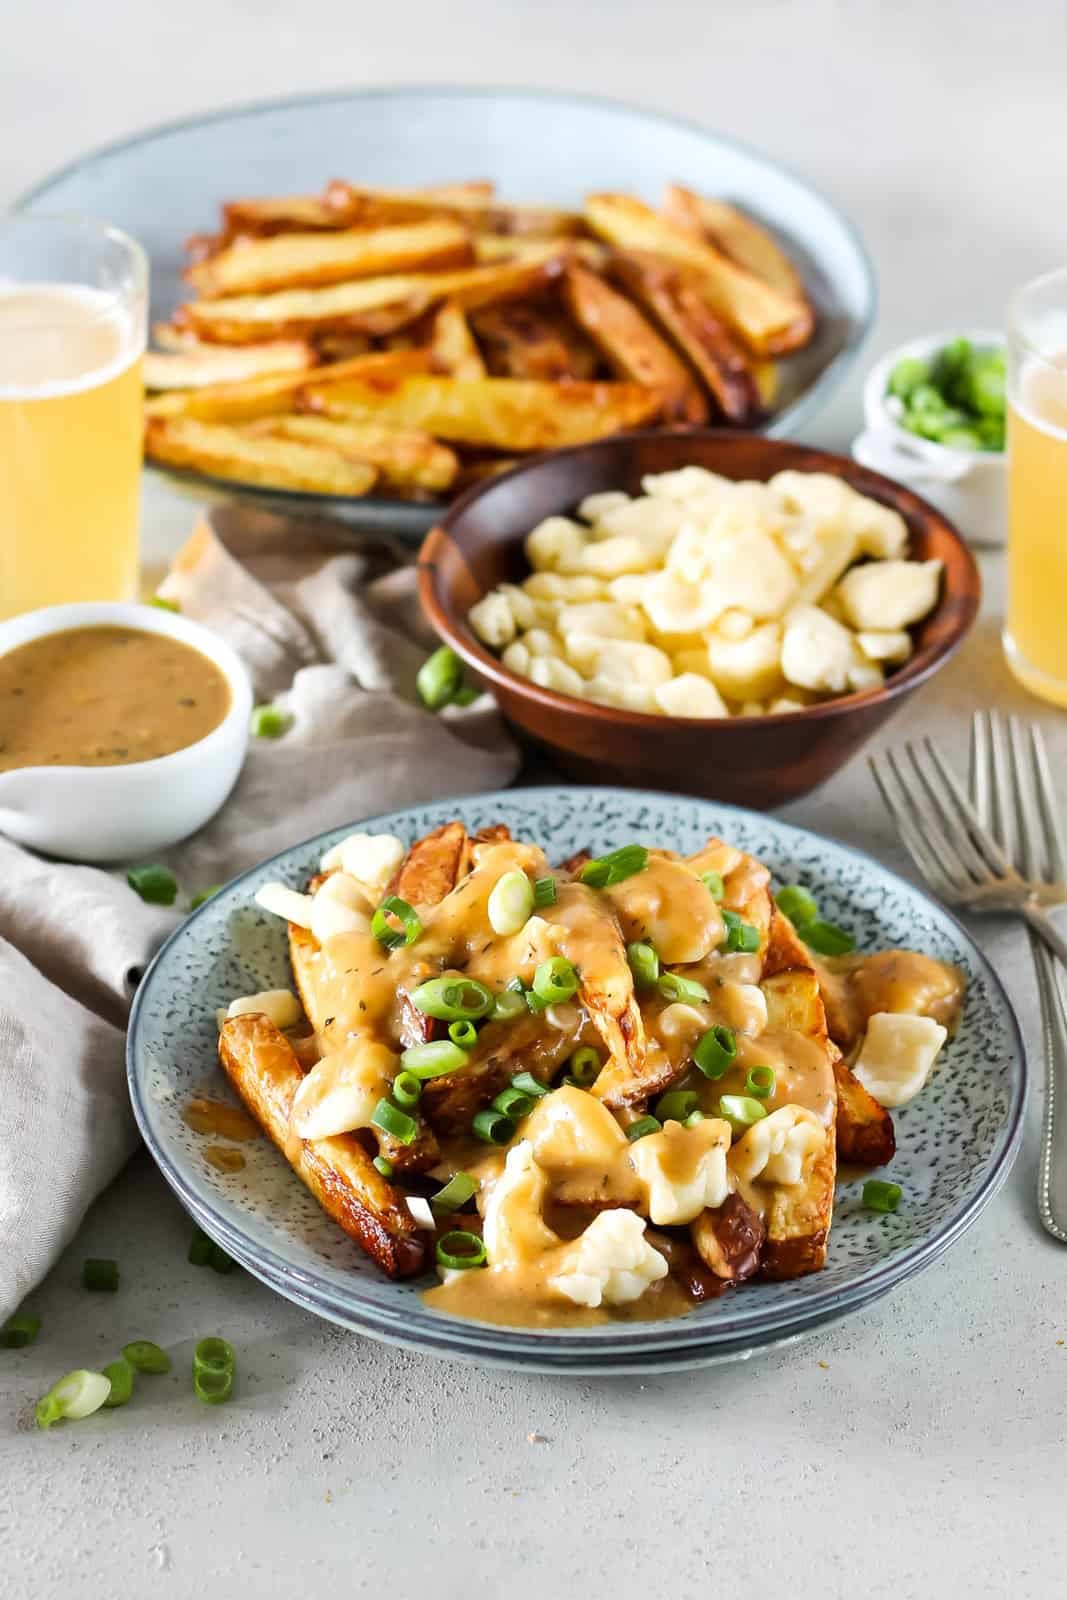 a blue plate with vegetarian poutine topped with green onions, with more fries, gravy, and cheese curds in the background